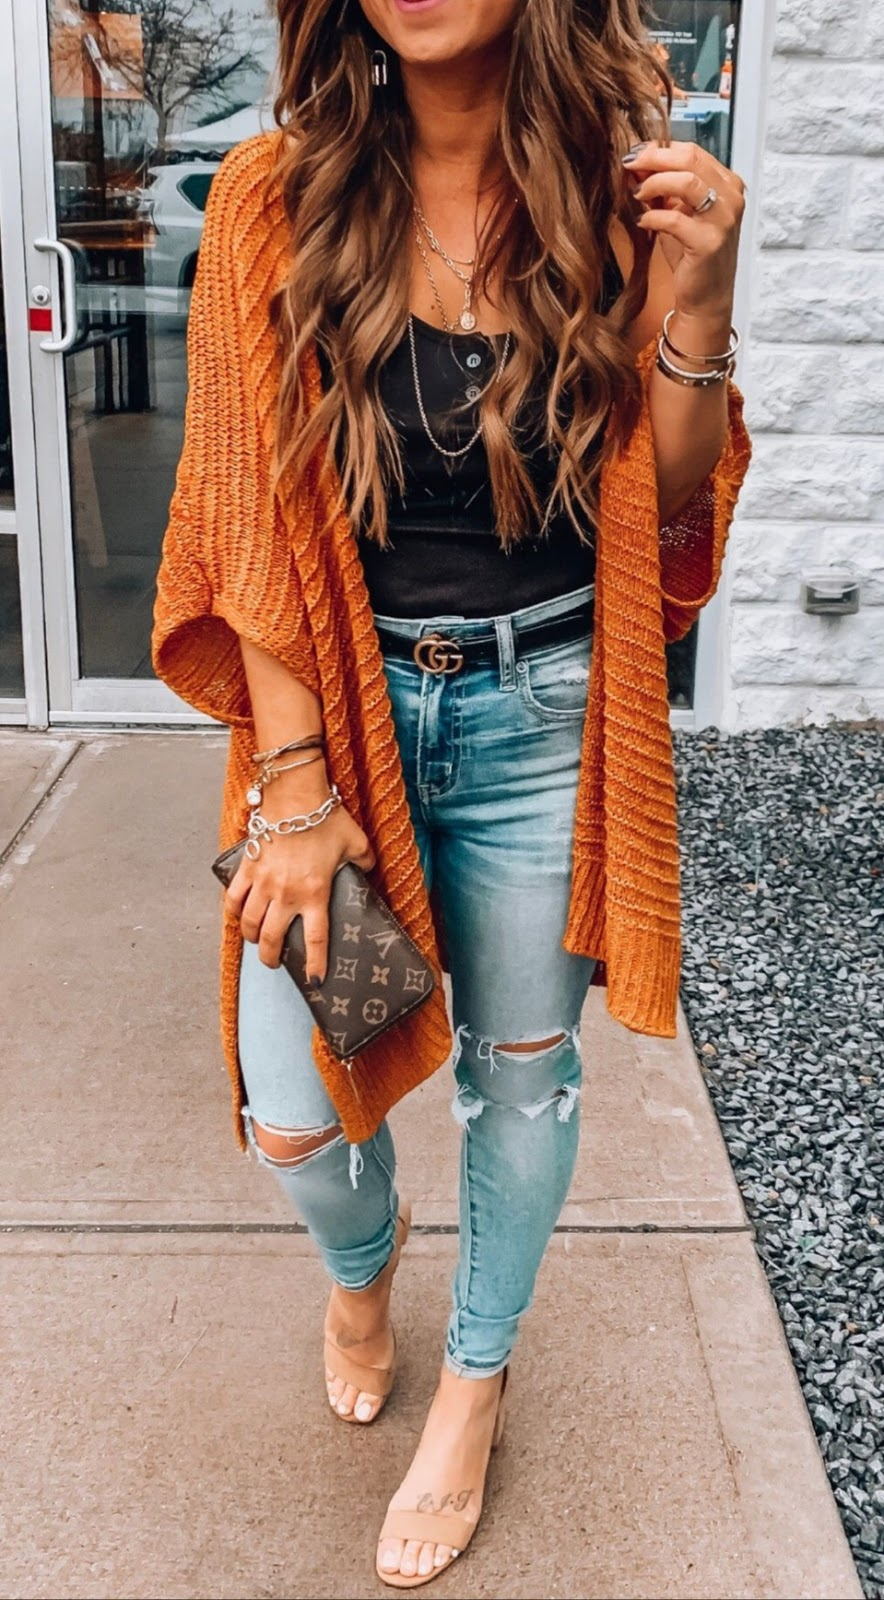 f13b67c7ad 11 Cute Summer Vacation Outfits 2019 - Dress Design